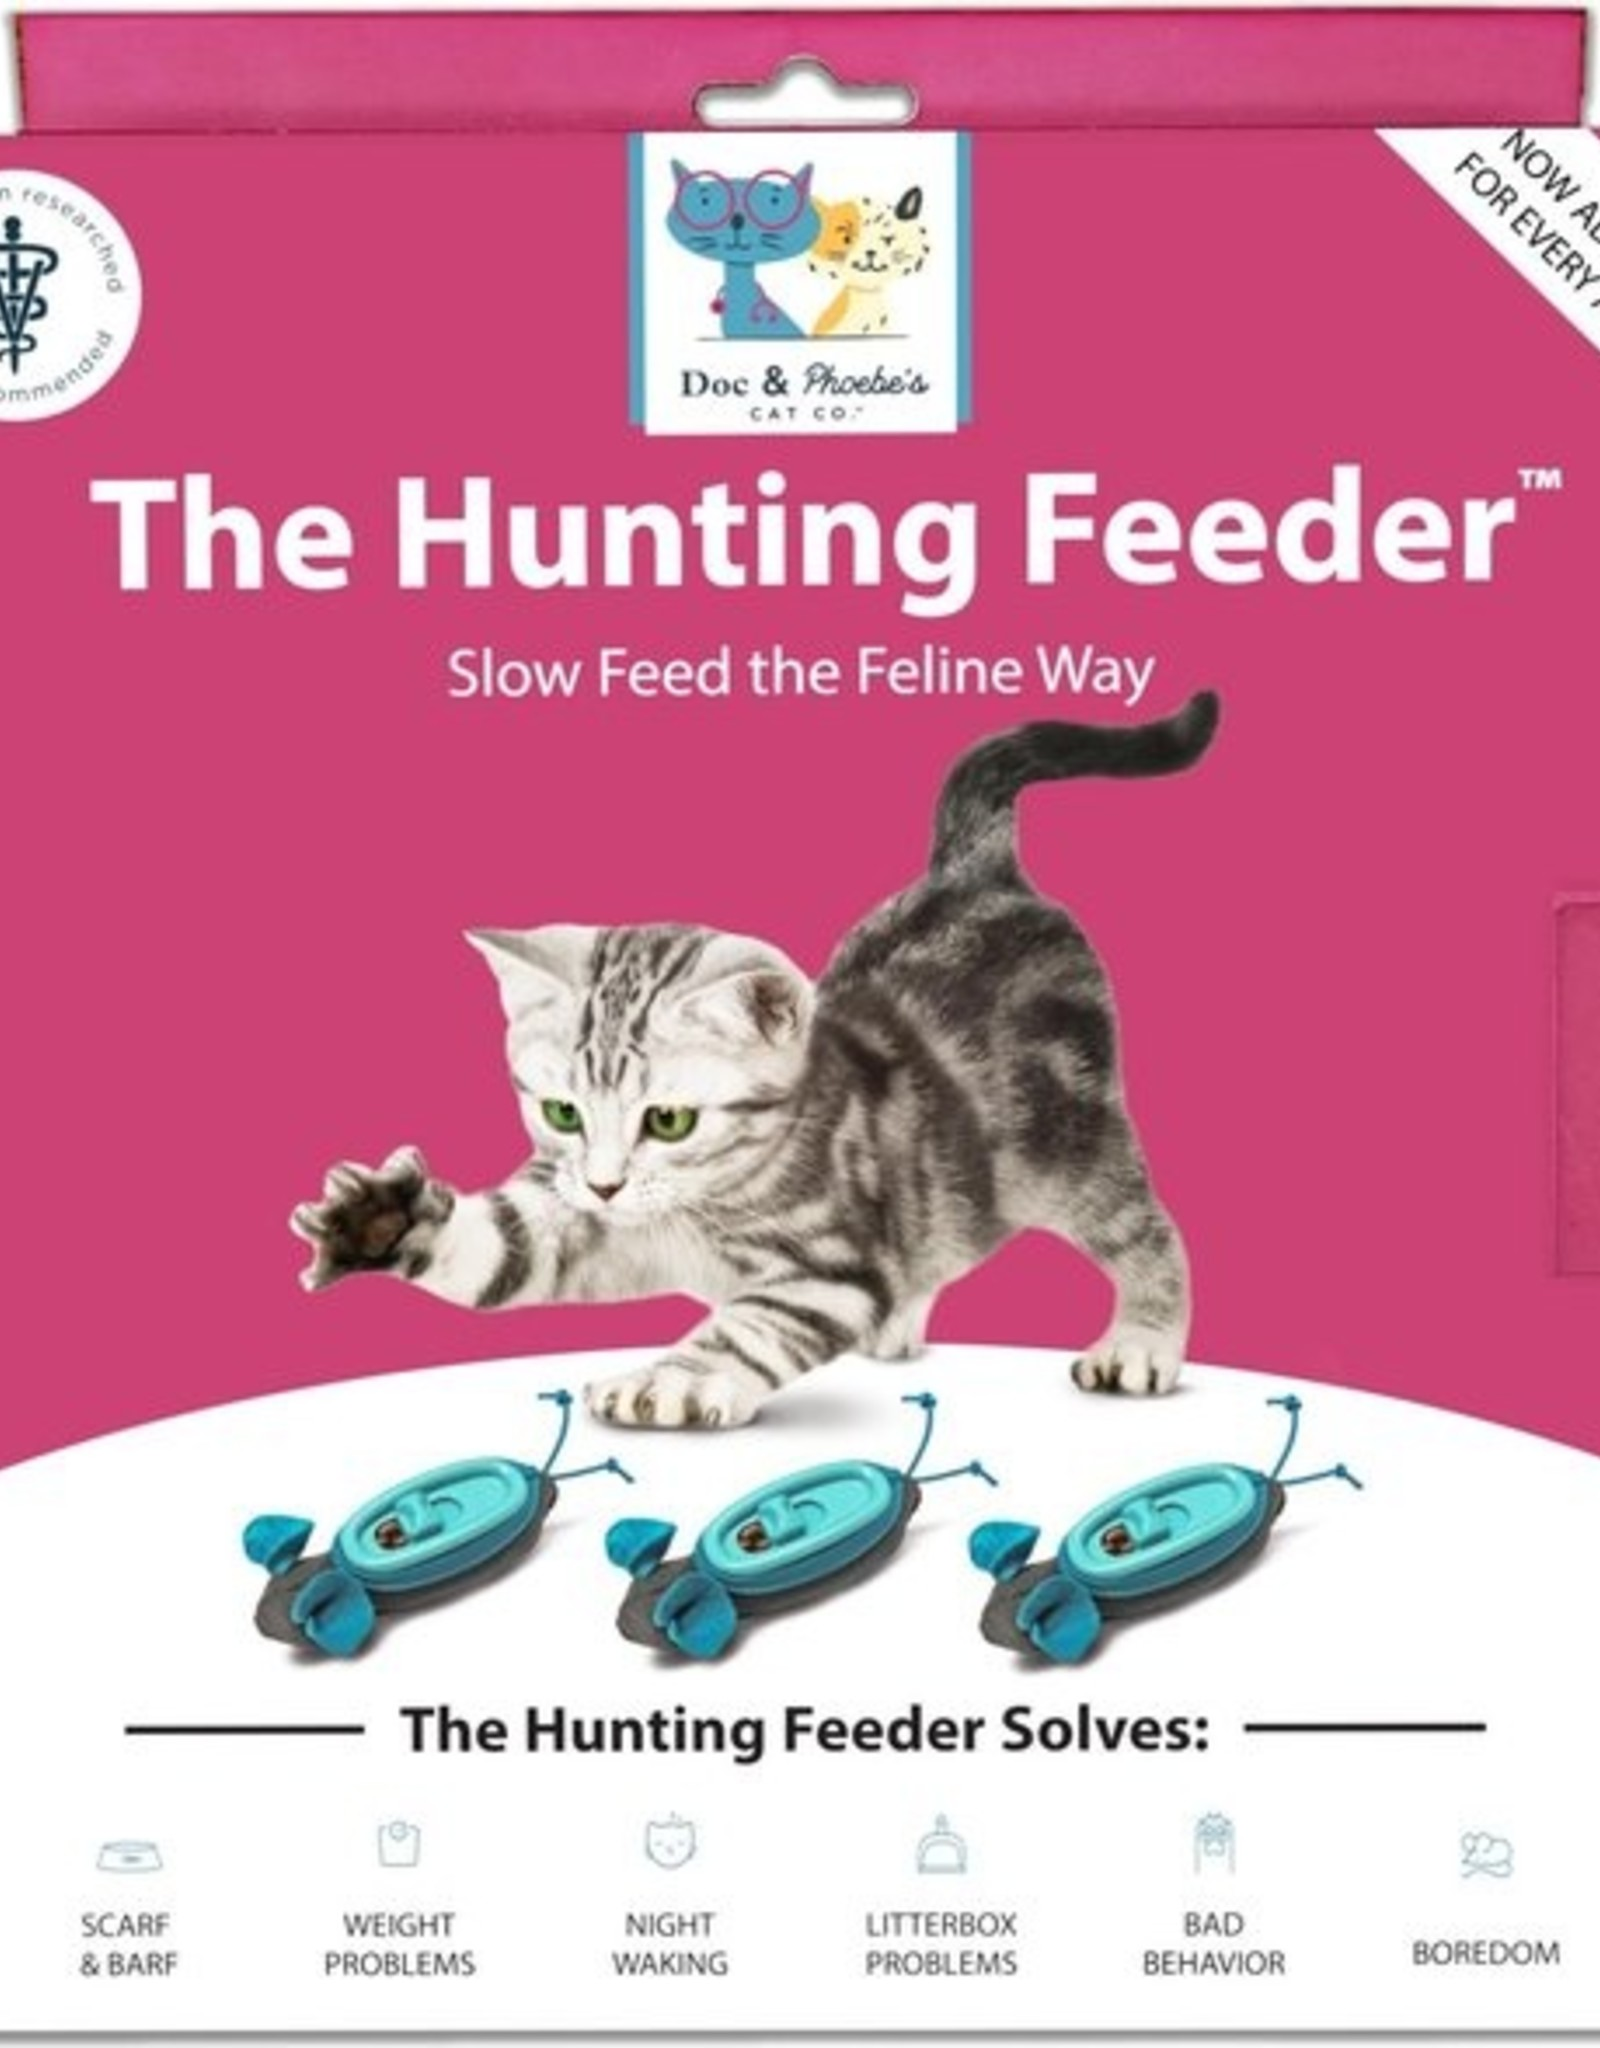 Doc & Phoebe's Doc & Phoebe's - The hunting Feeder